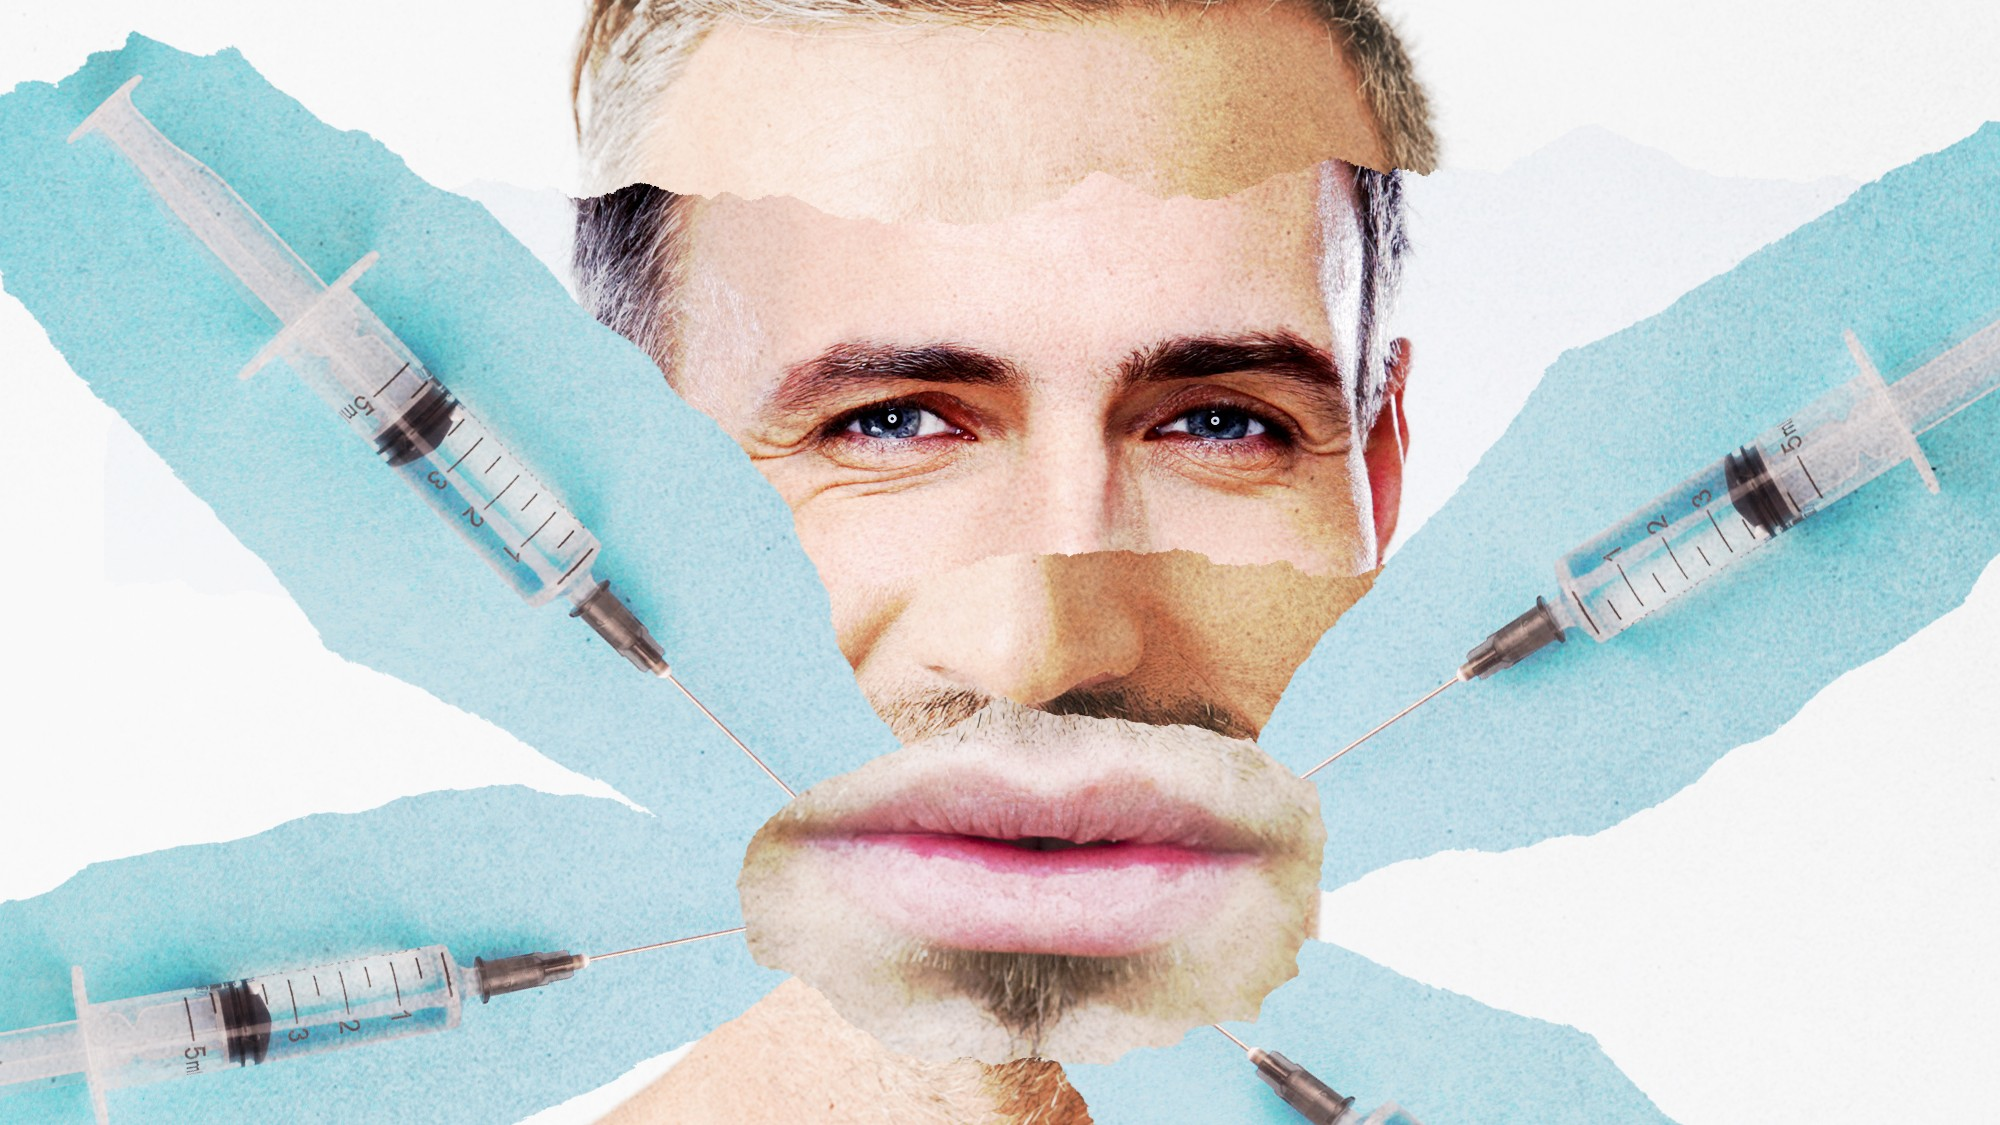 Men Are Going Wild for 'Masculinisation' Fillers - VICE